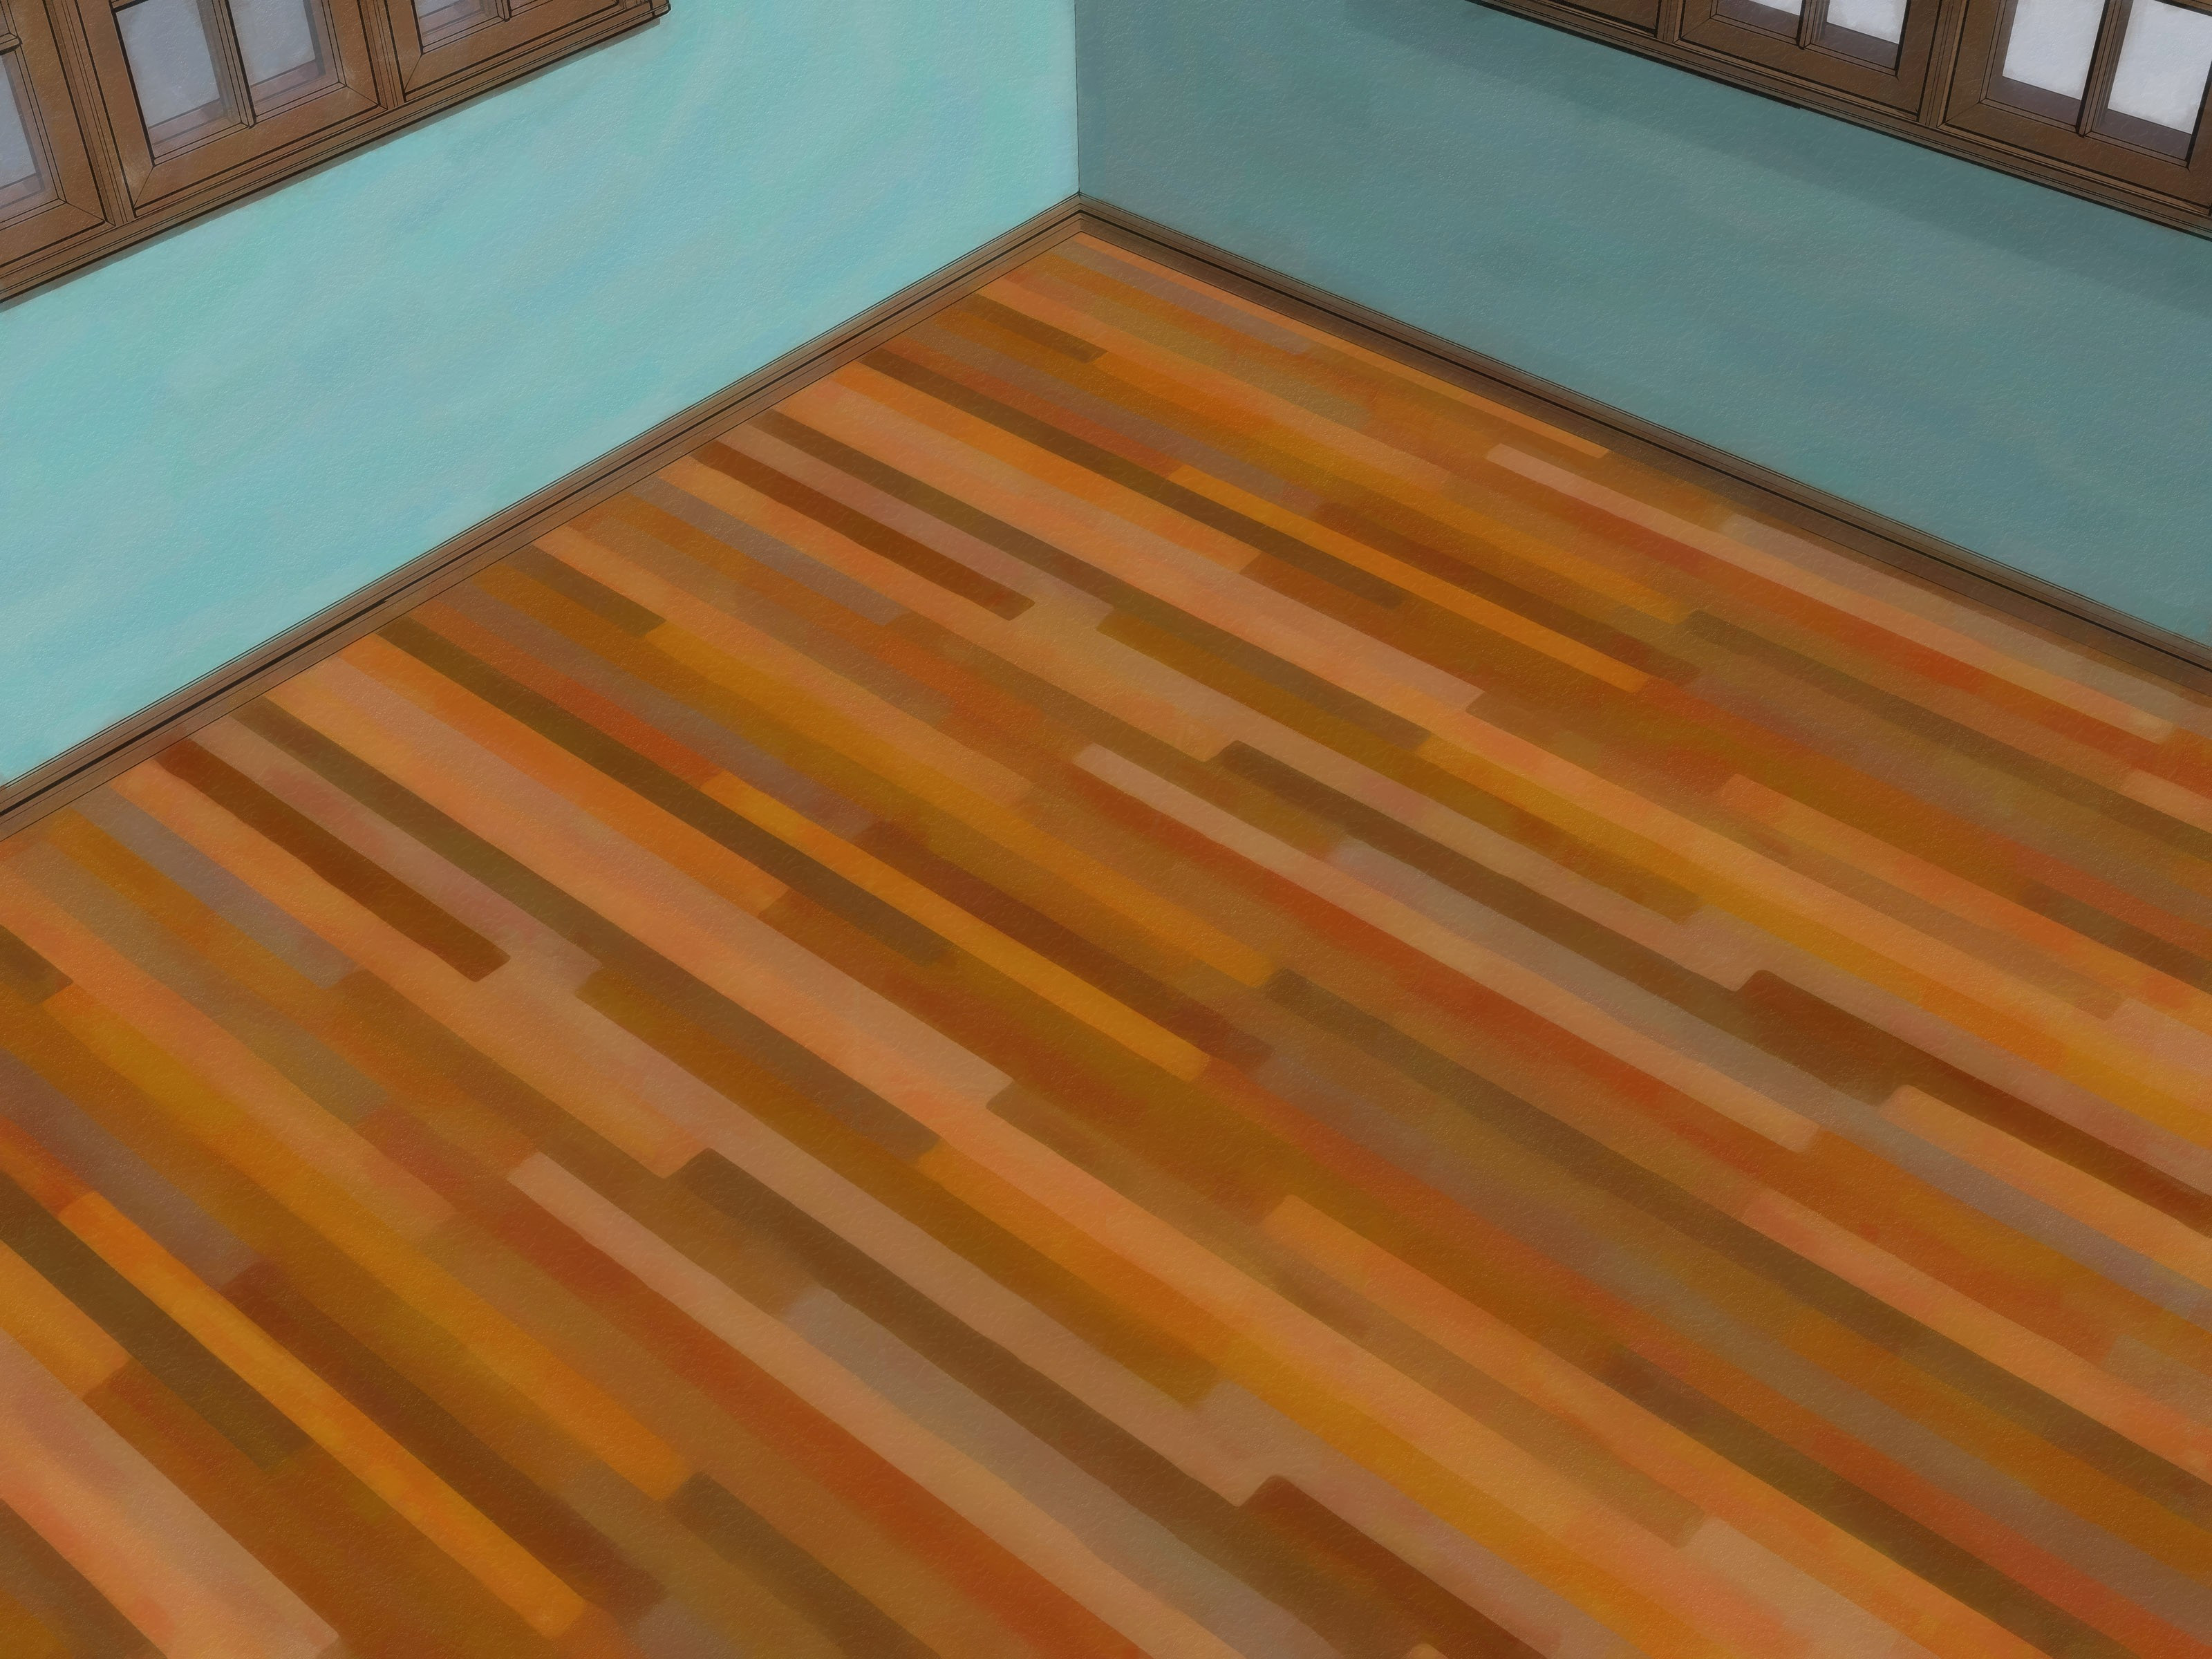 17 Fabulous How Much A Square Foot To Refinish Hardwood